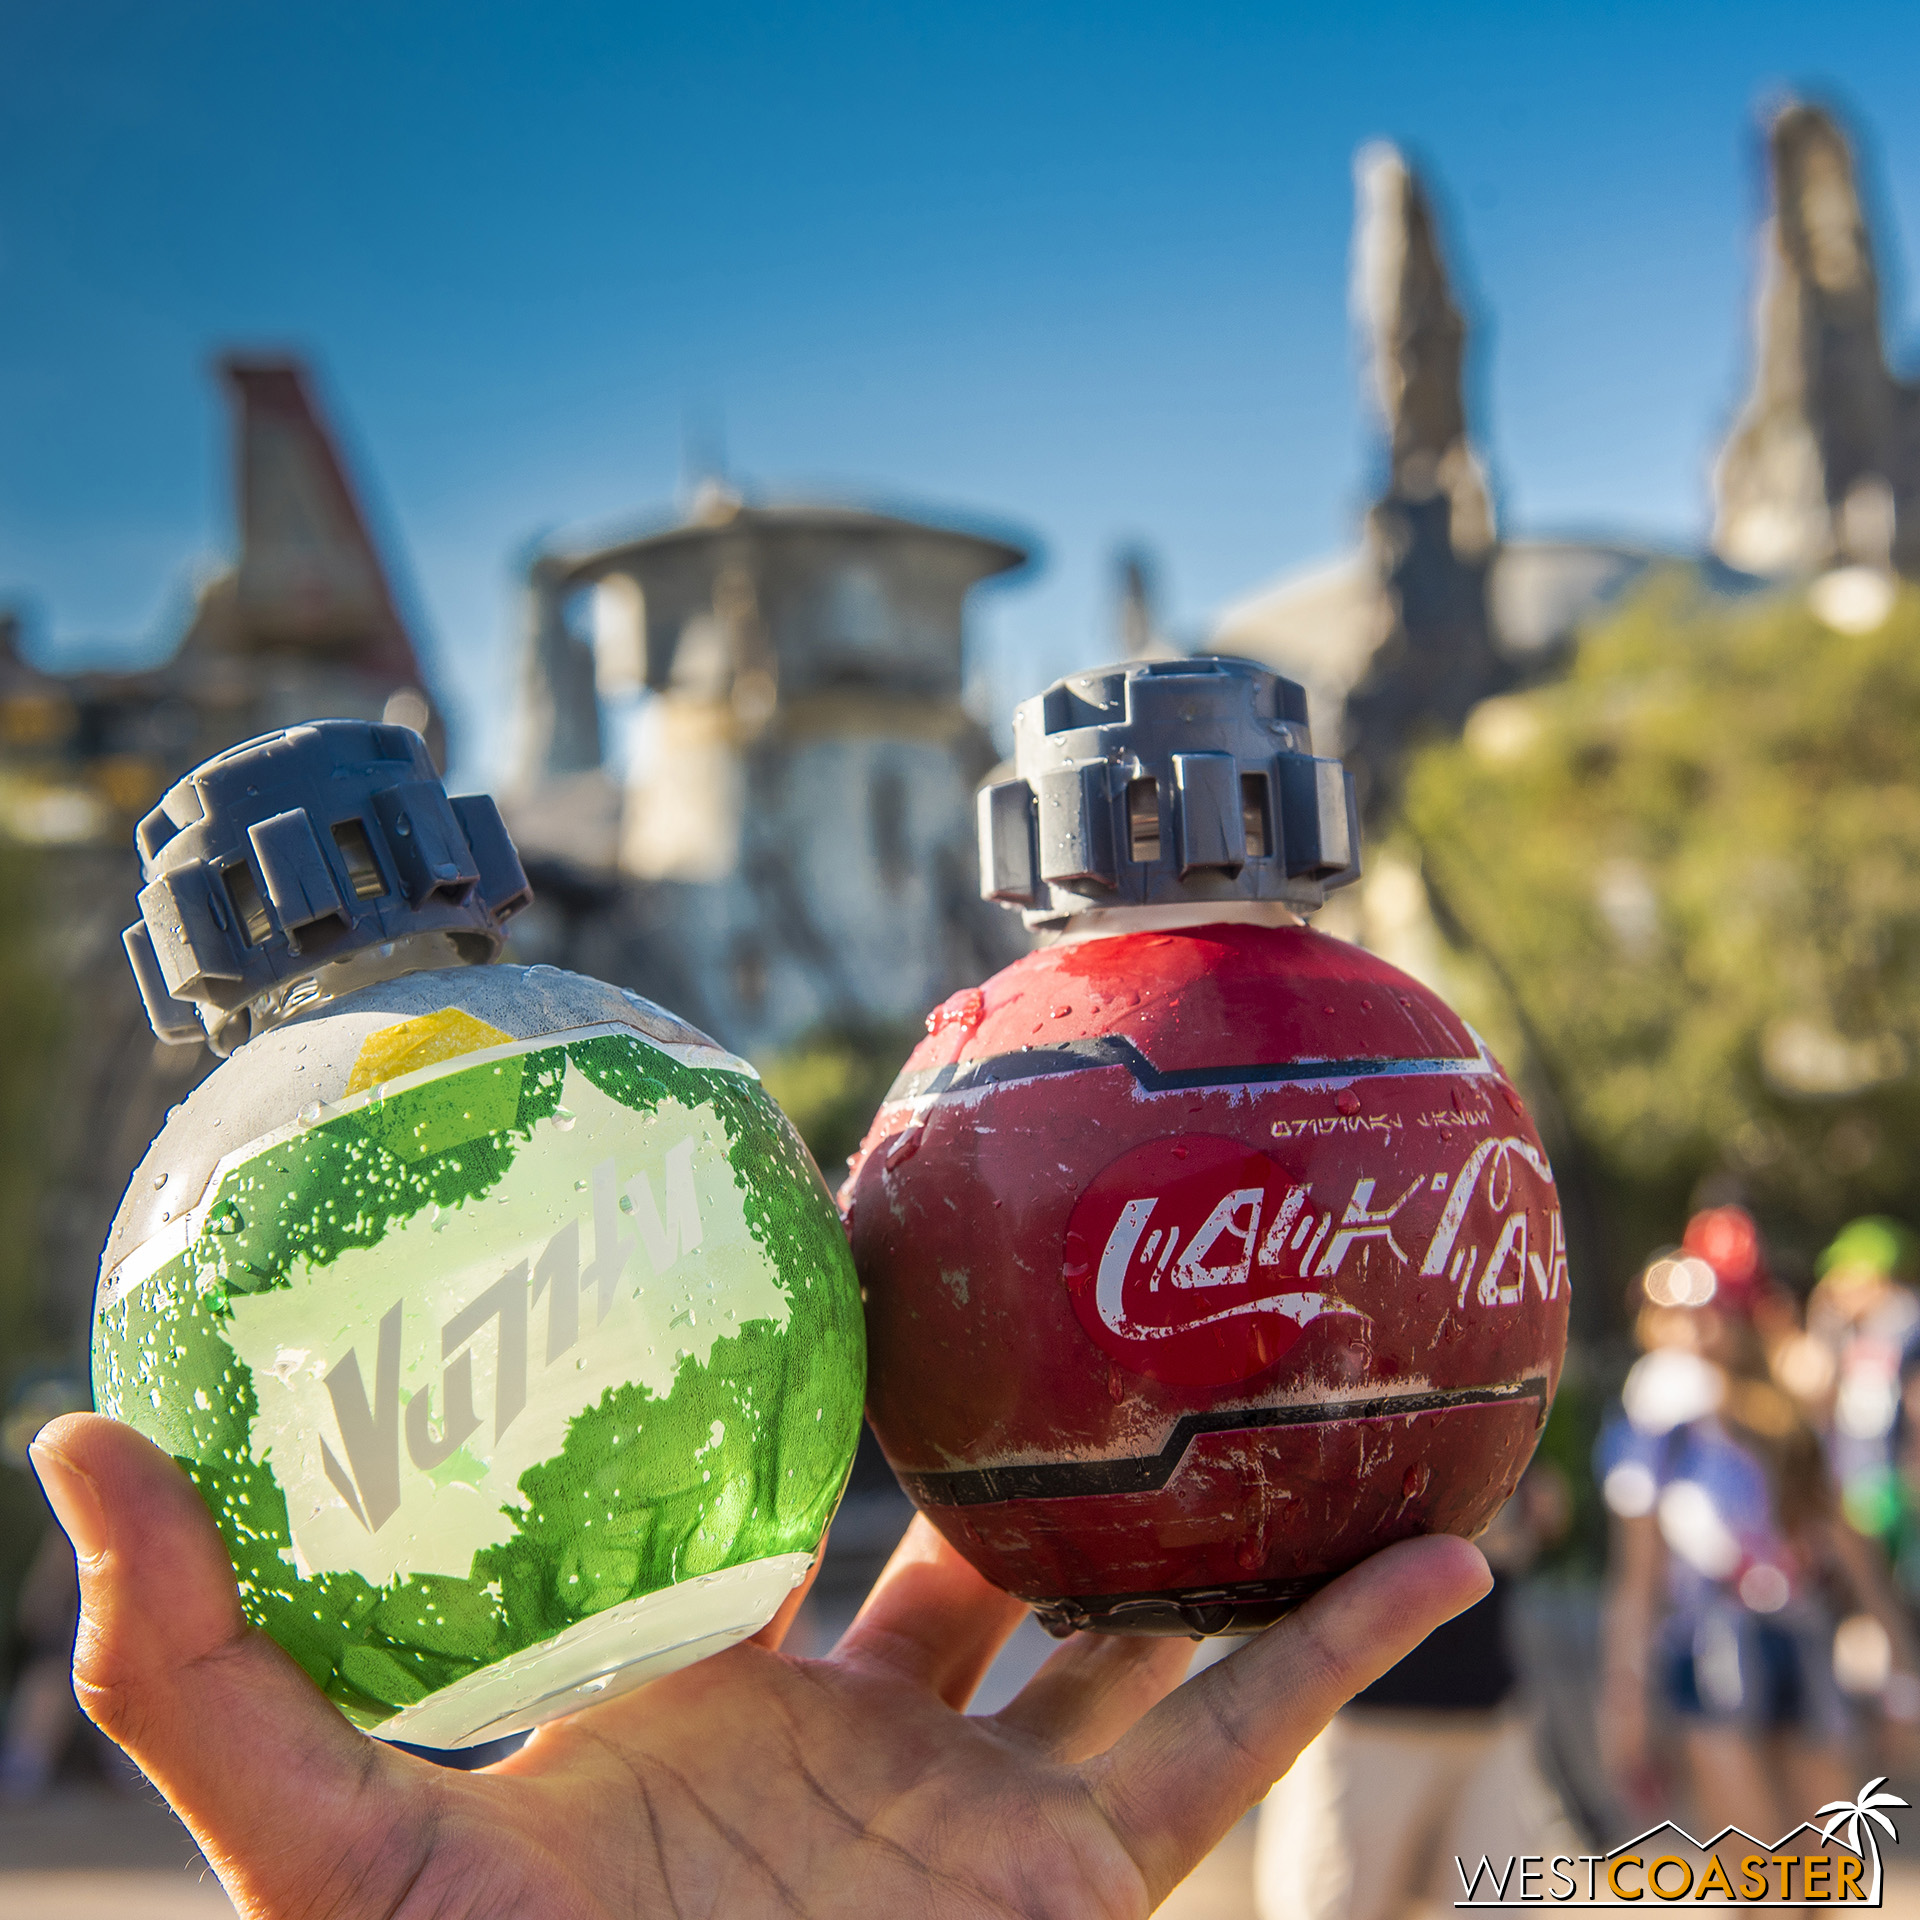 These are basically Disney's middle fingers to Universal's claim that soda bottles don't belong in hyper-themed environments.